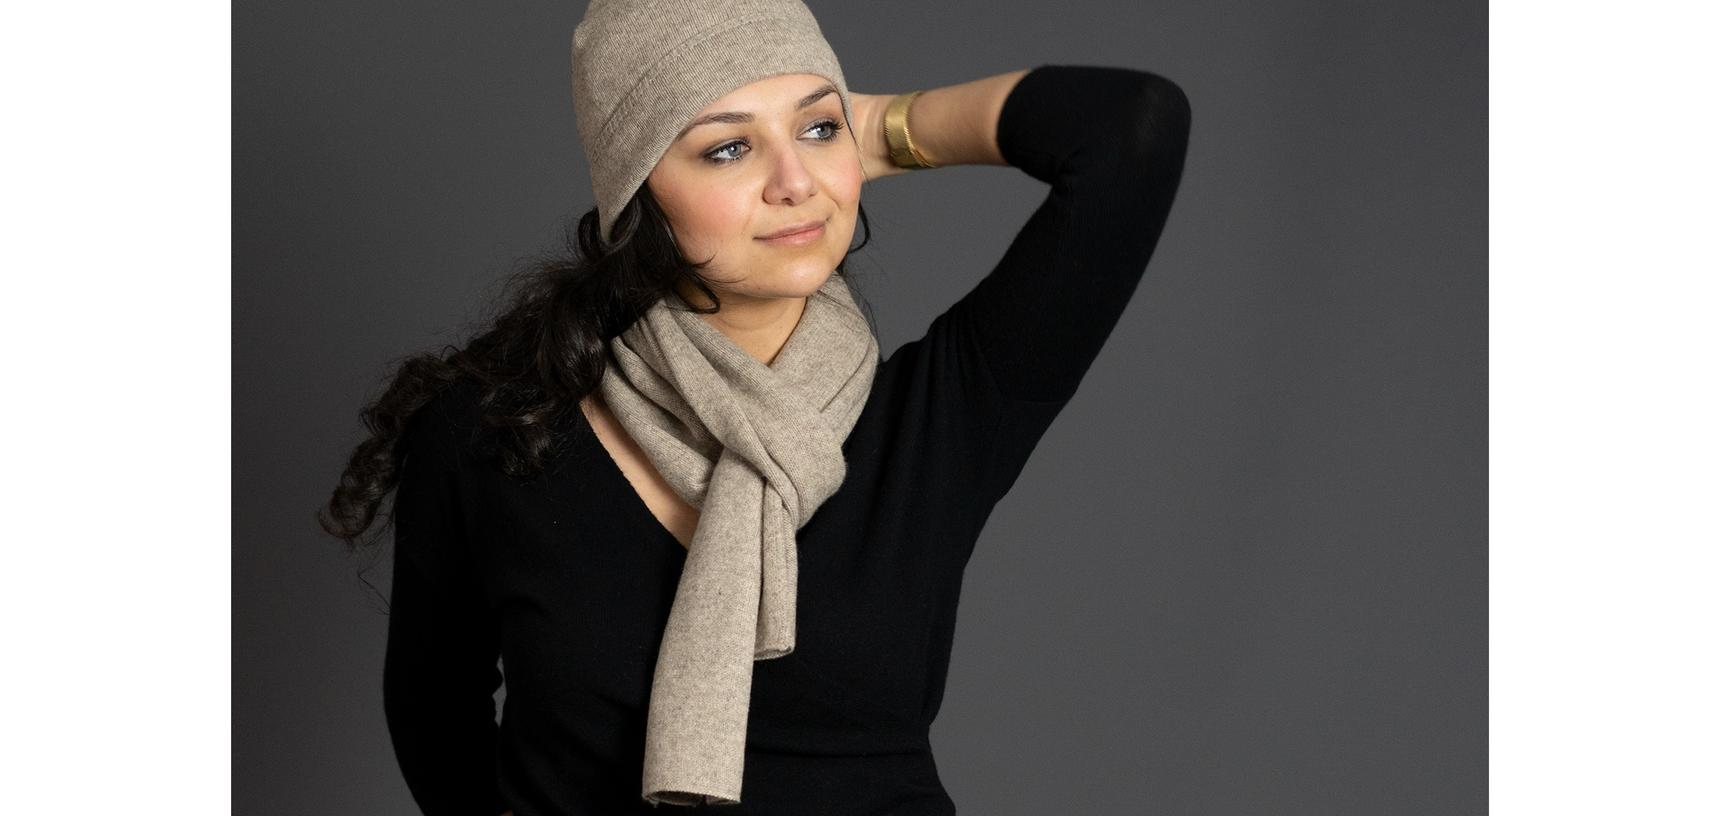 w morgane with scarf and hat